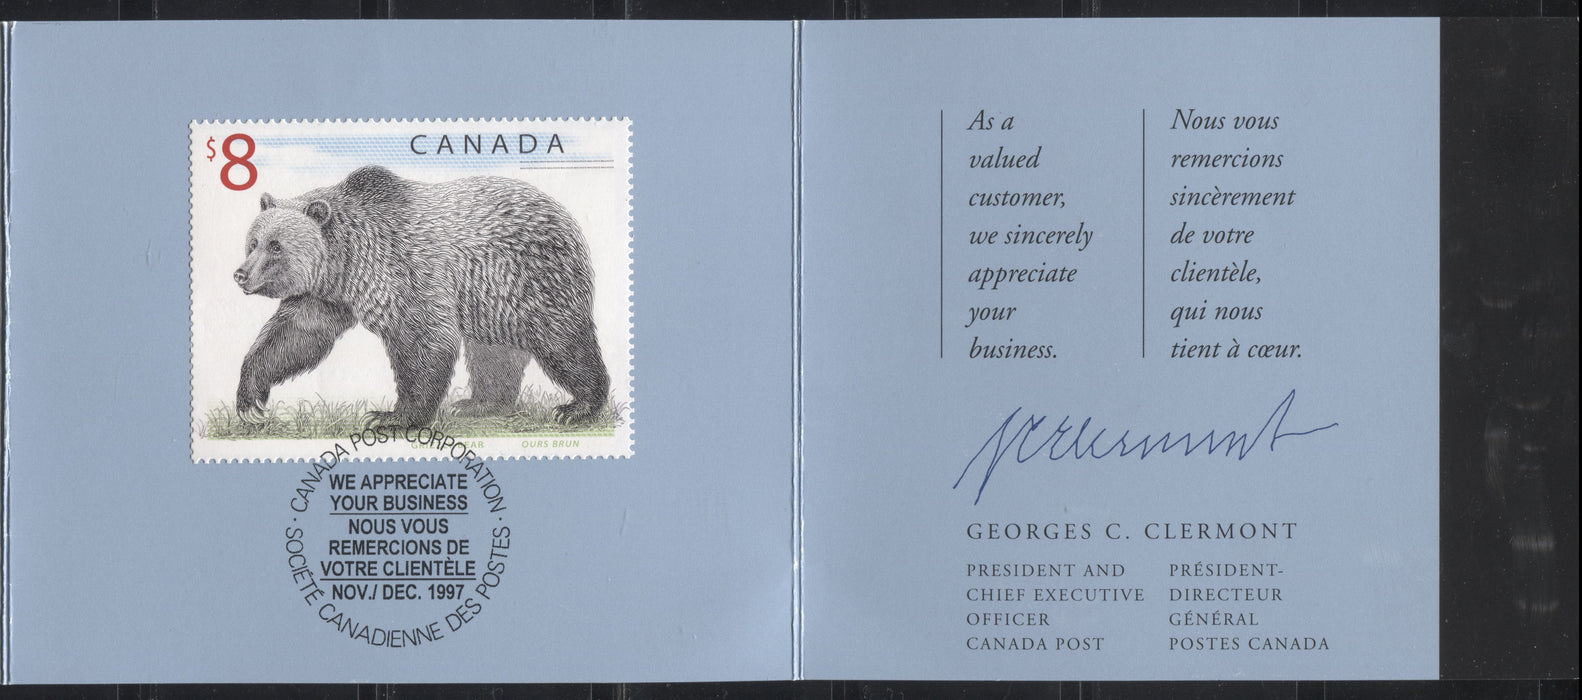 Canada #1694 $8 Multicoloured Grizzly Bear, 1998-2005 Trades and Wildlife Definitive Issue, a Very Fine Example of the Customer Appreciation Folder on HF Stock